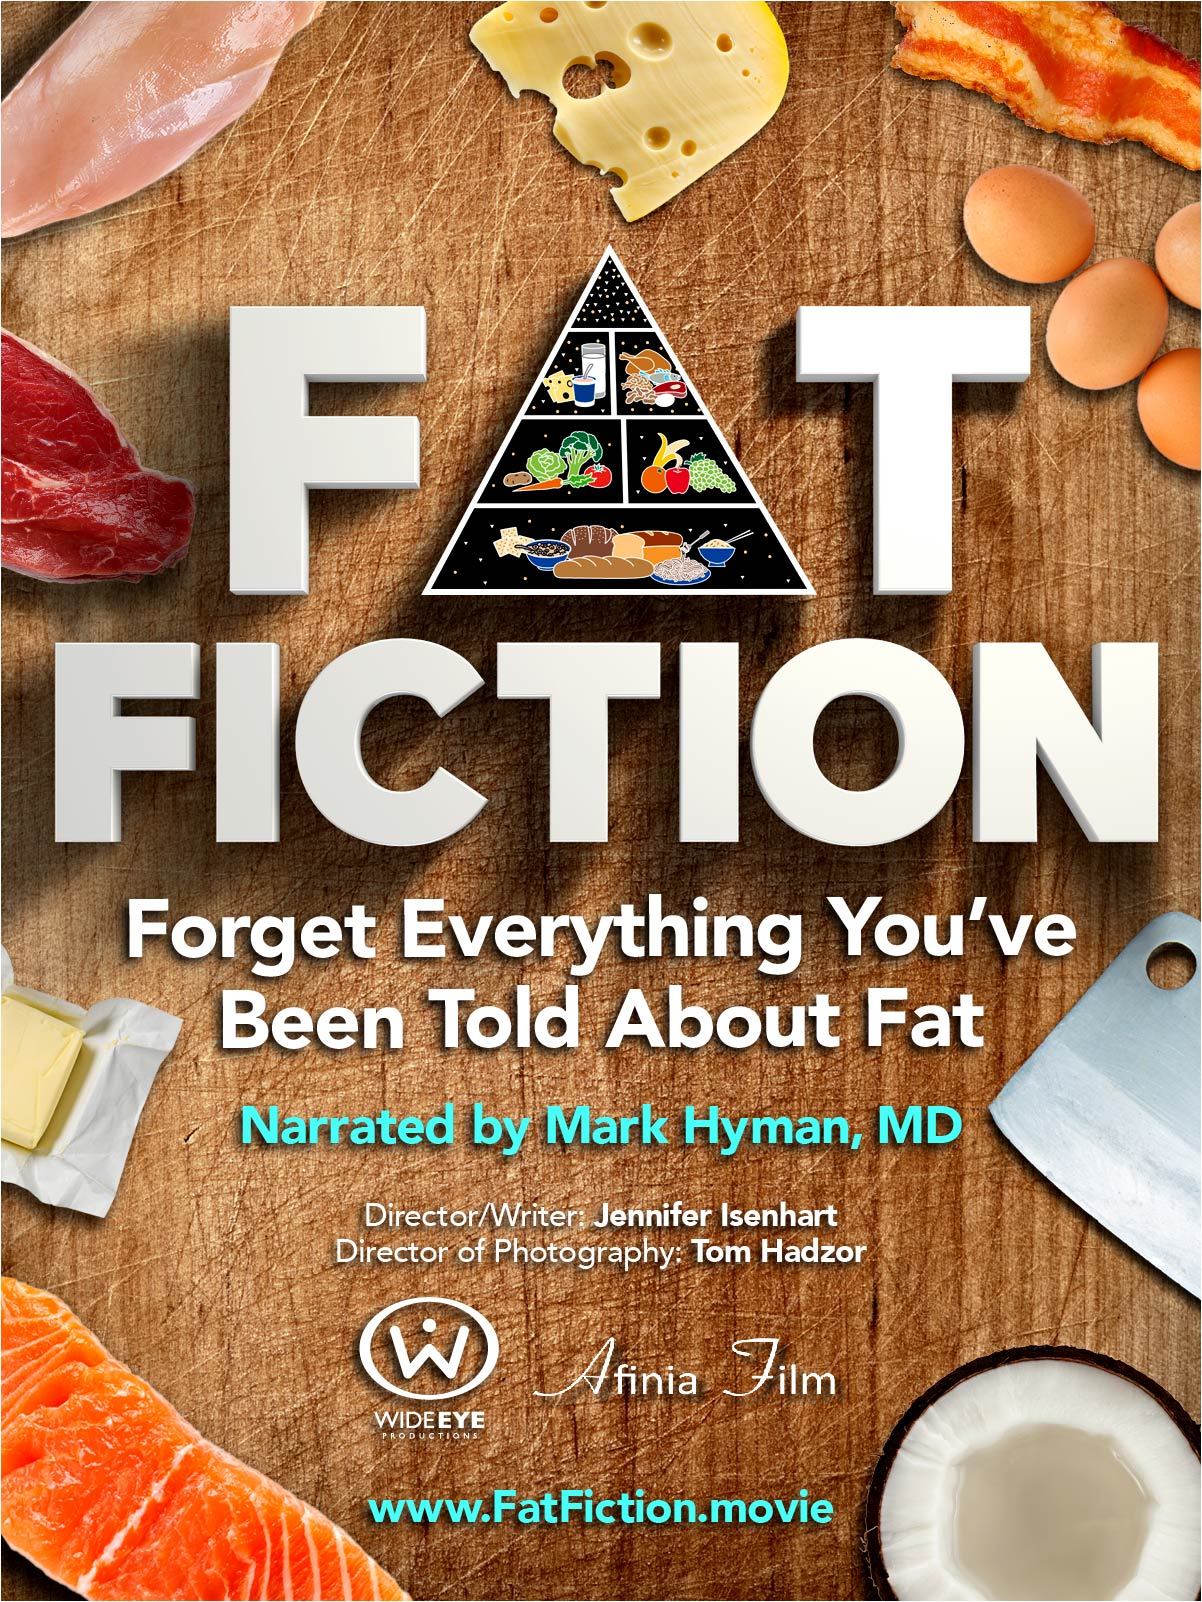 dieta de diabetes dr mark hyman